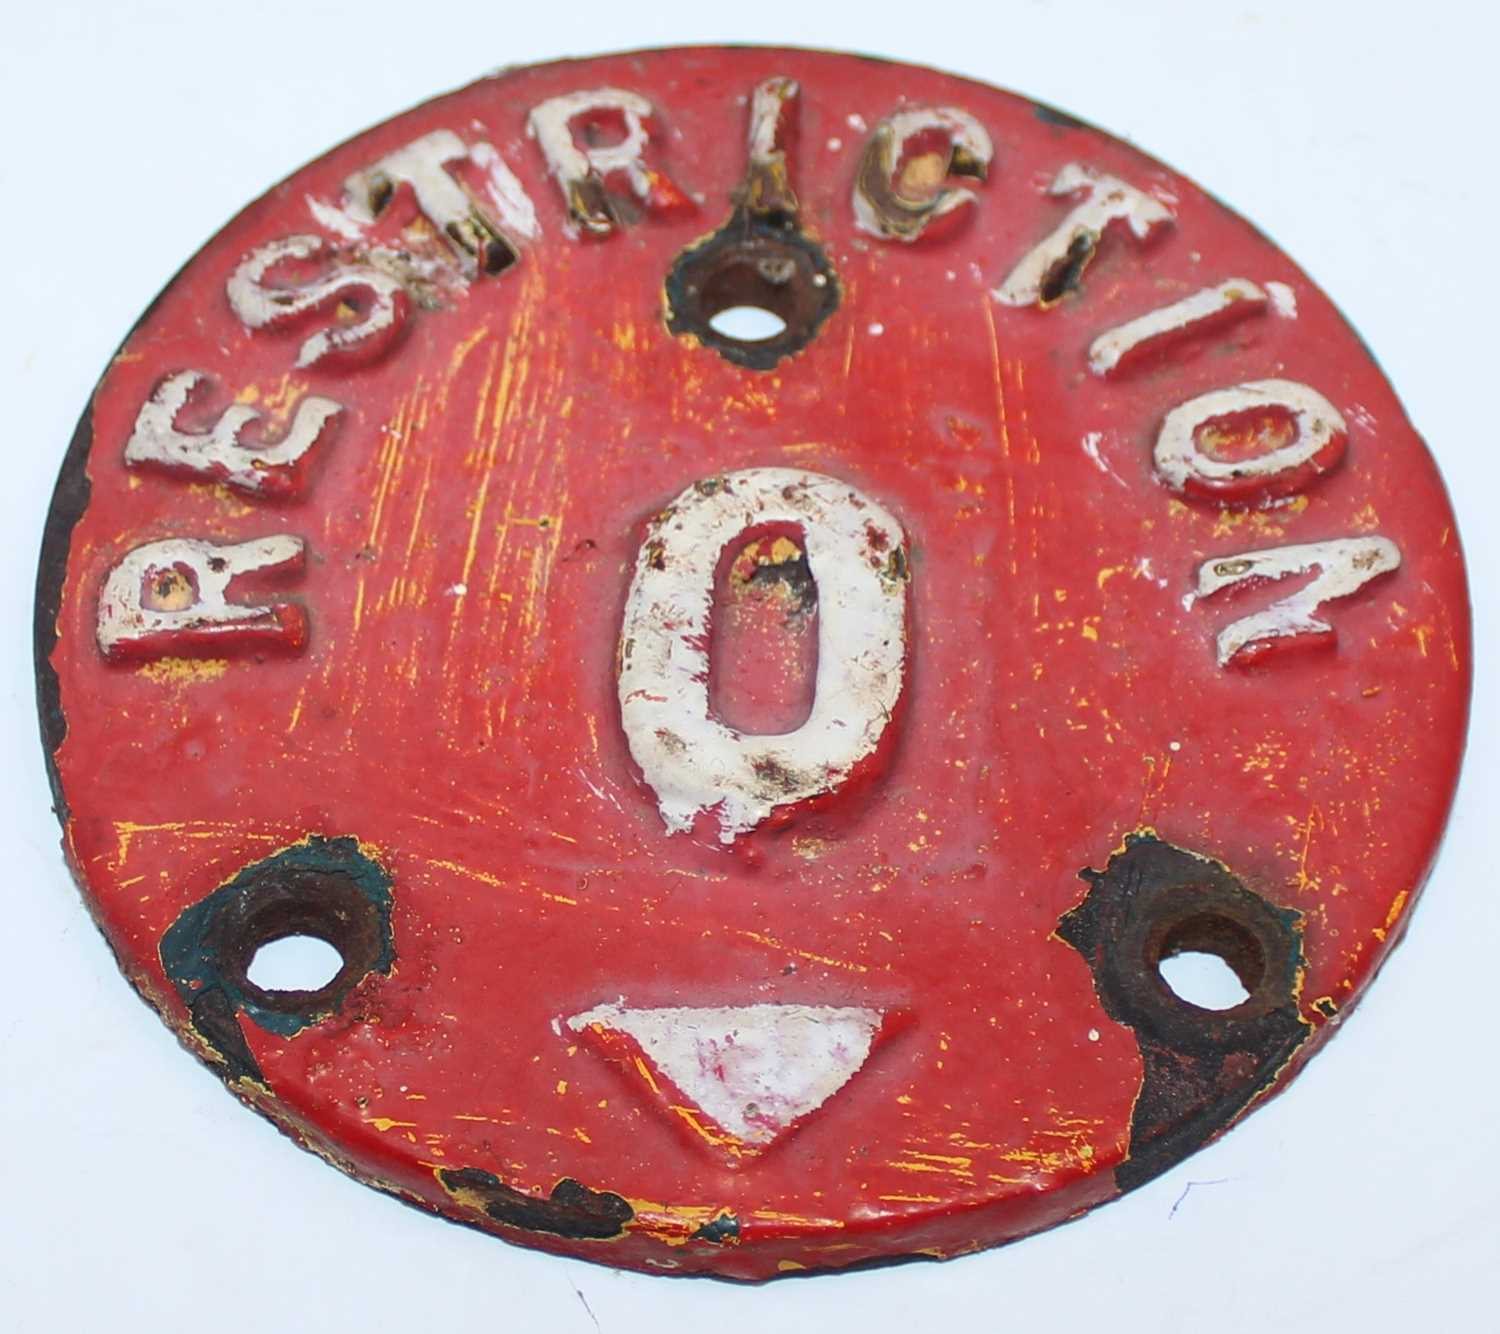 Ransomes Cast Iron Crane Restriction Signs, 2 examples, identical, measurements 11cm diameter - Image 2 of 2